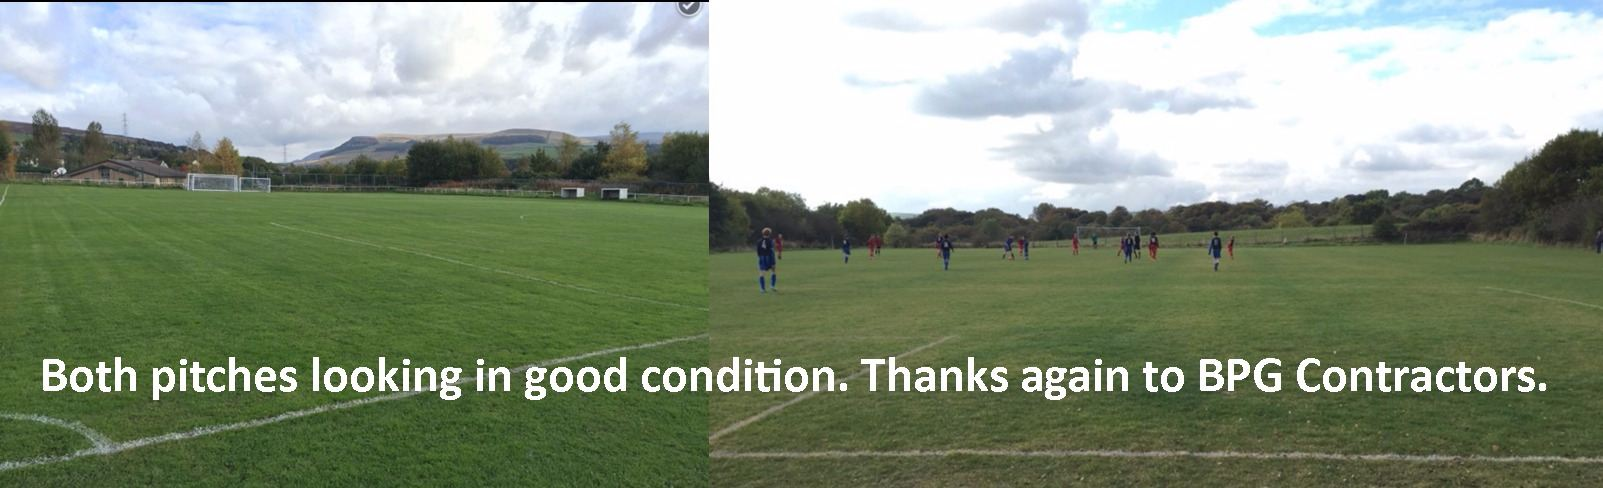 pitches in good condition